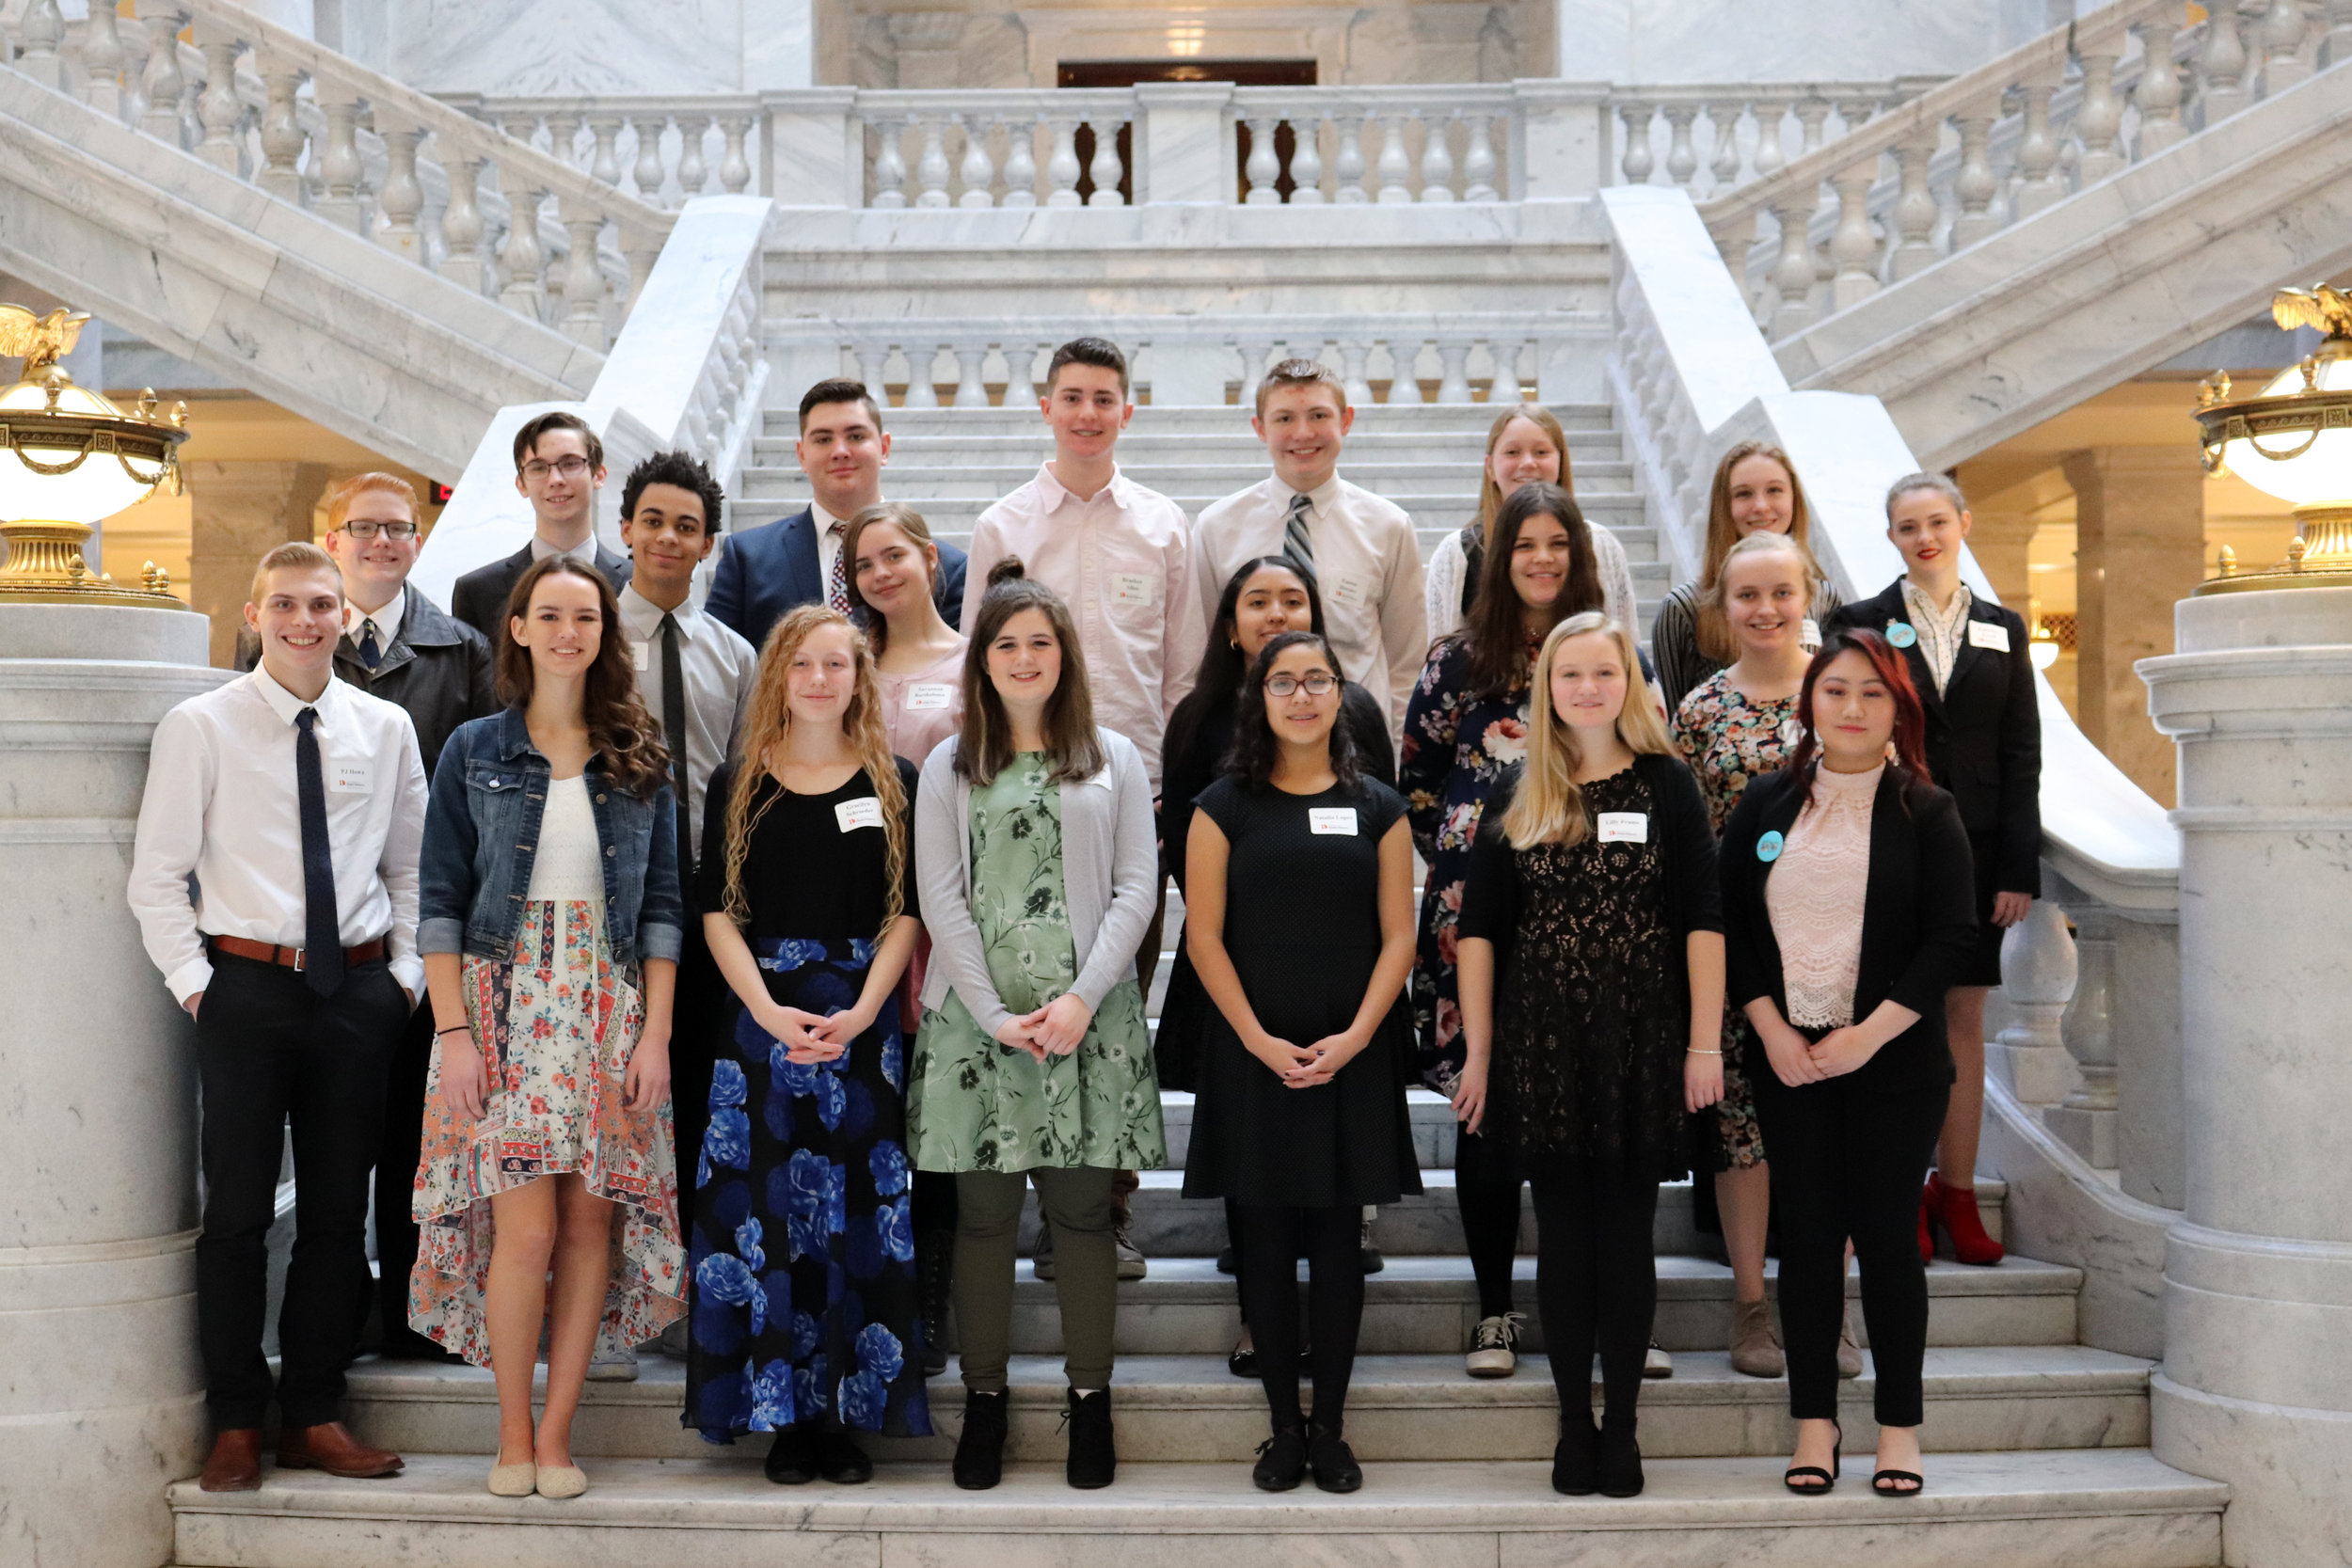 On the interior steps of the Capitol, students gather for a group photo.